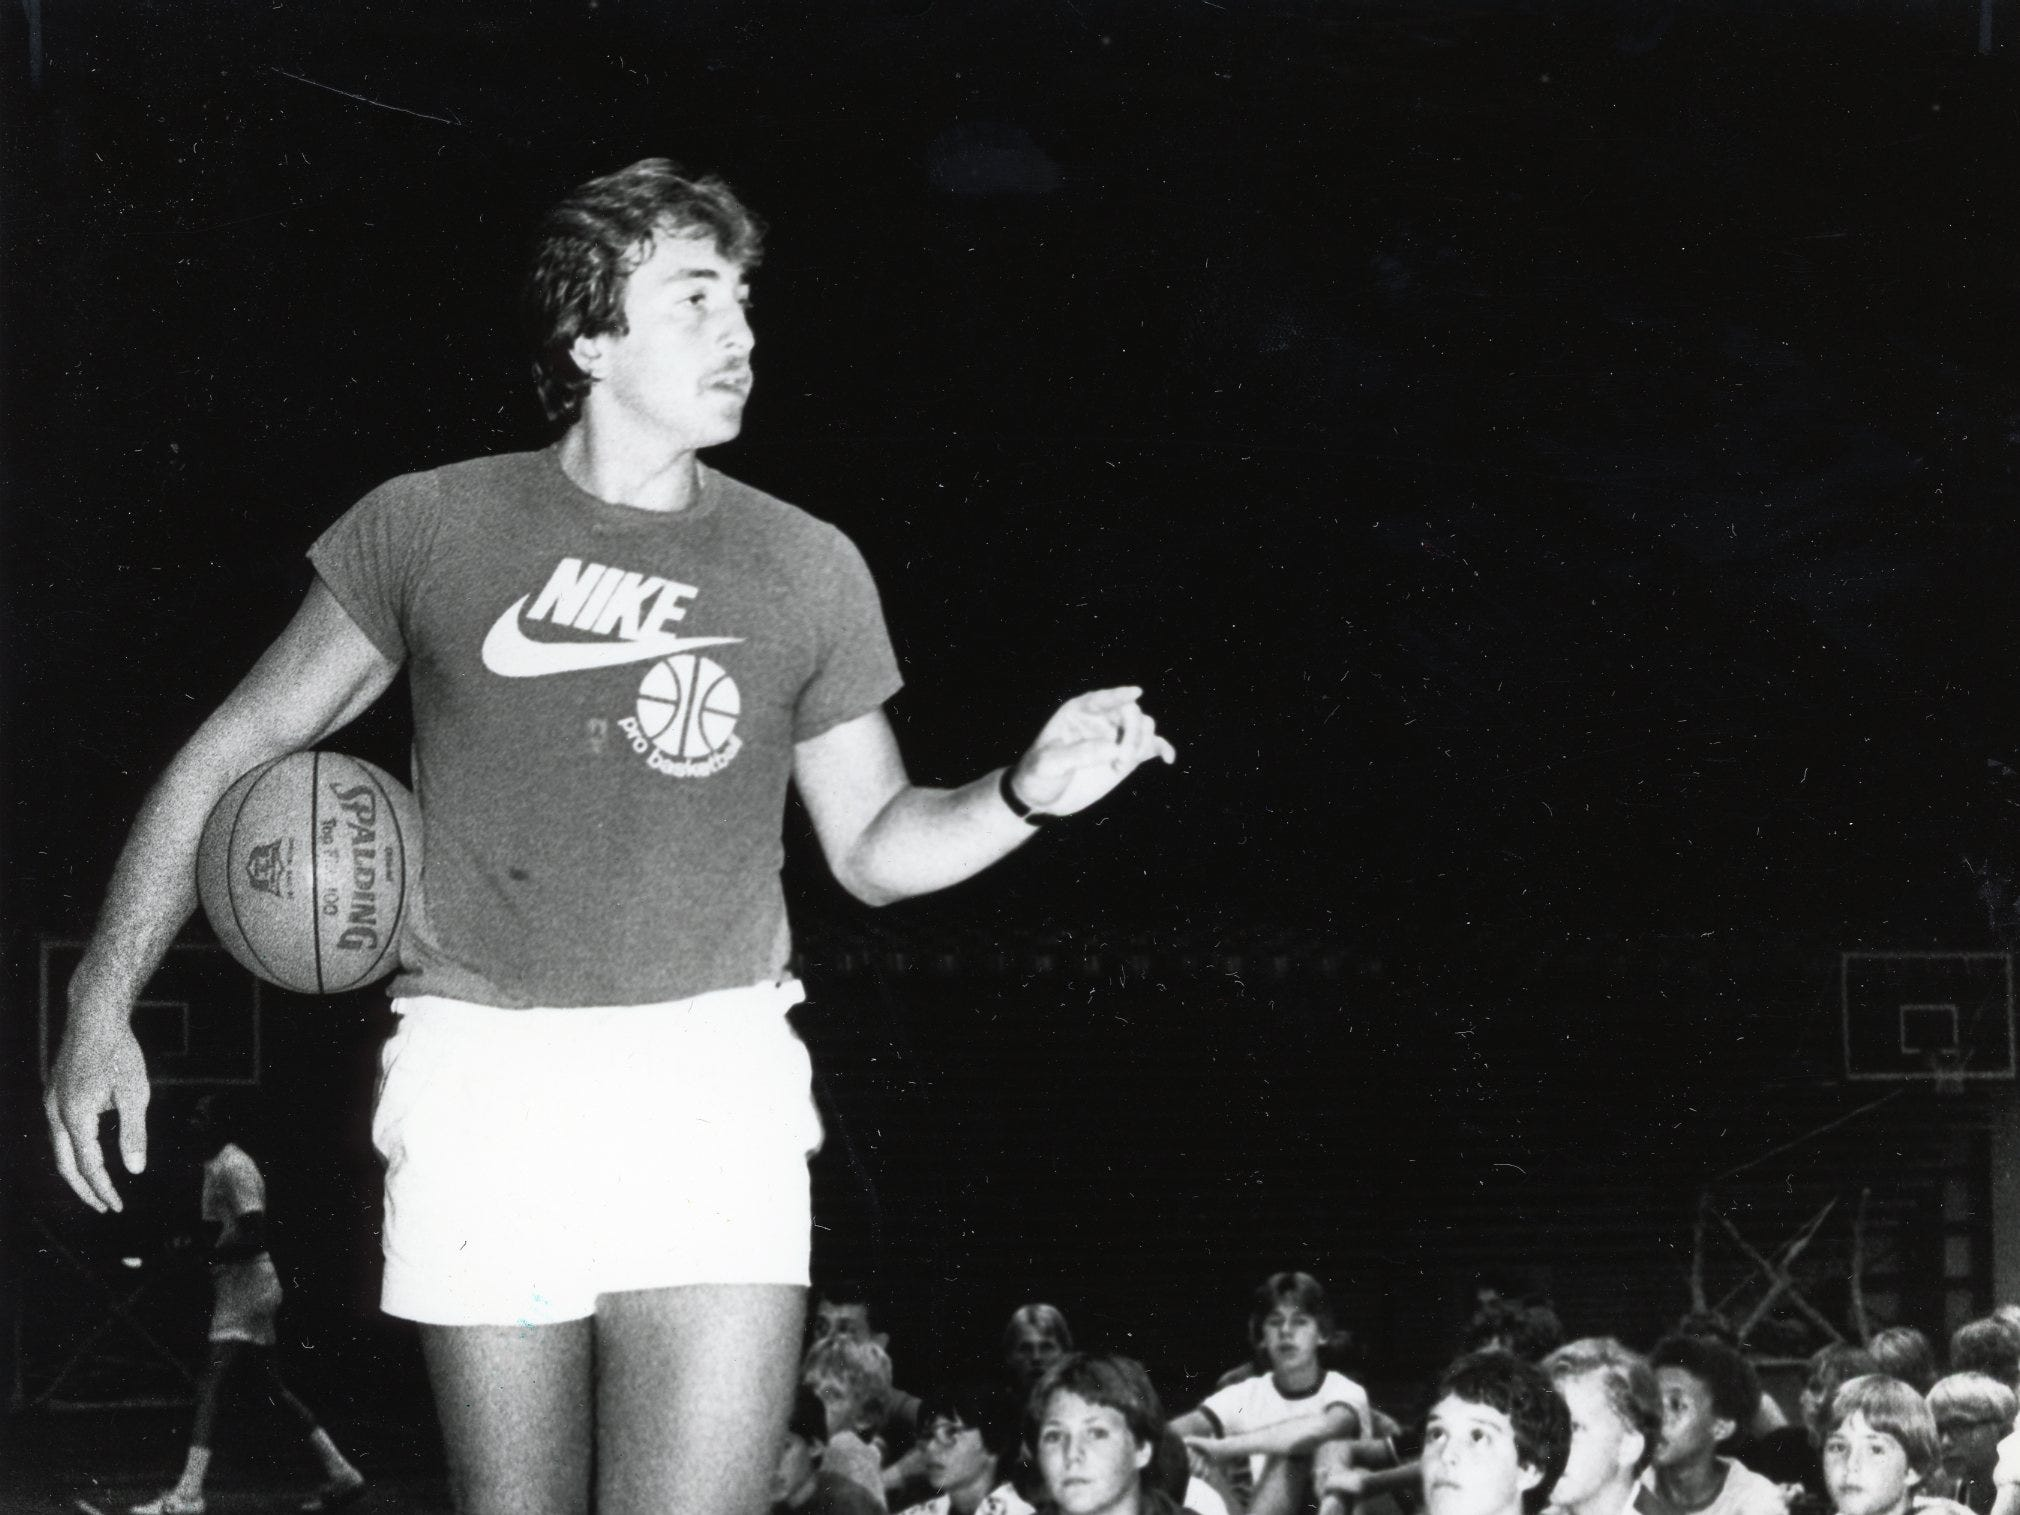 Former Vol Ernie Grunfeld talks with participants at the UT Camp of Champions, June, 1981.